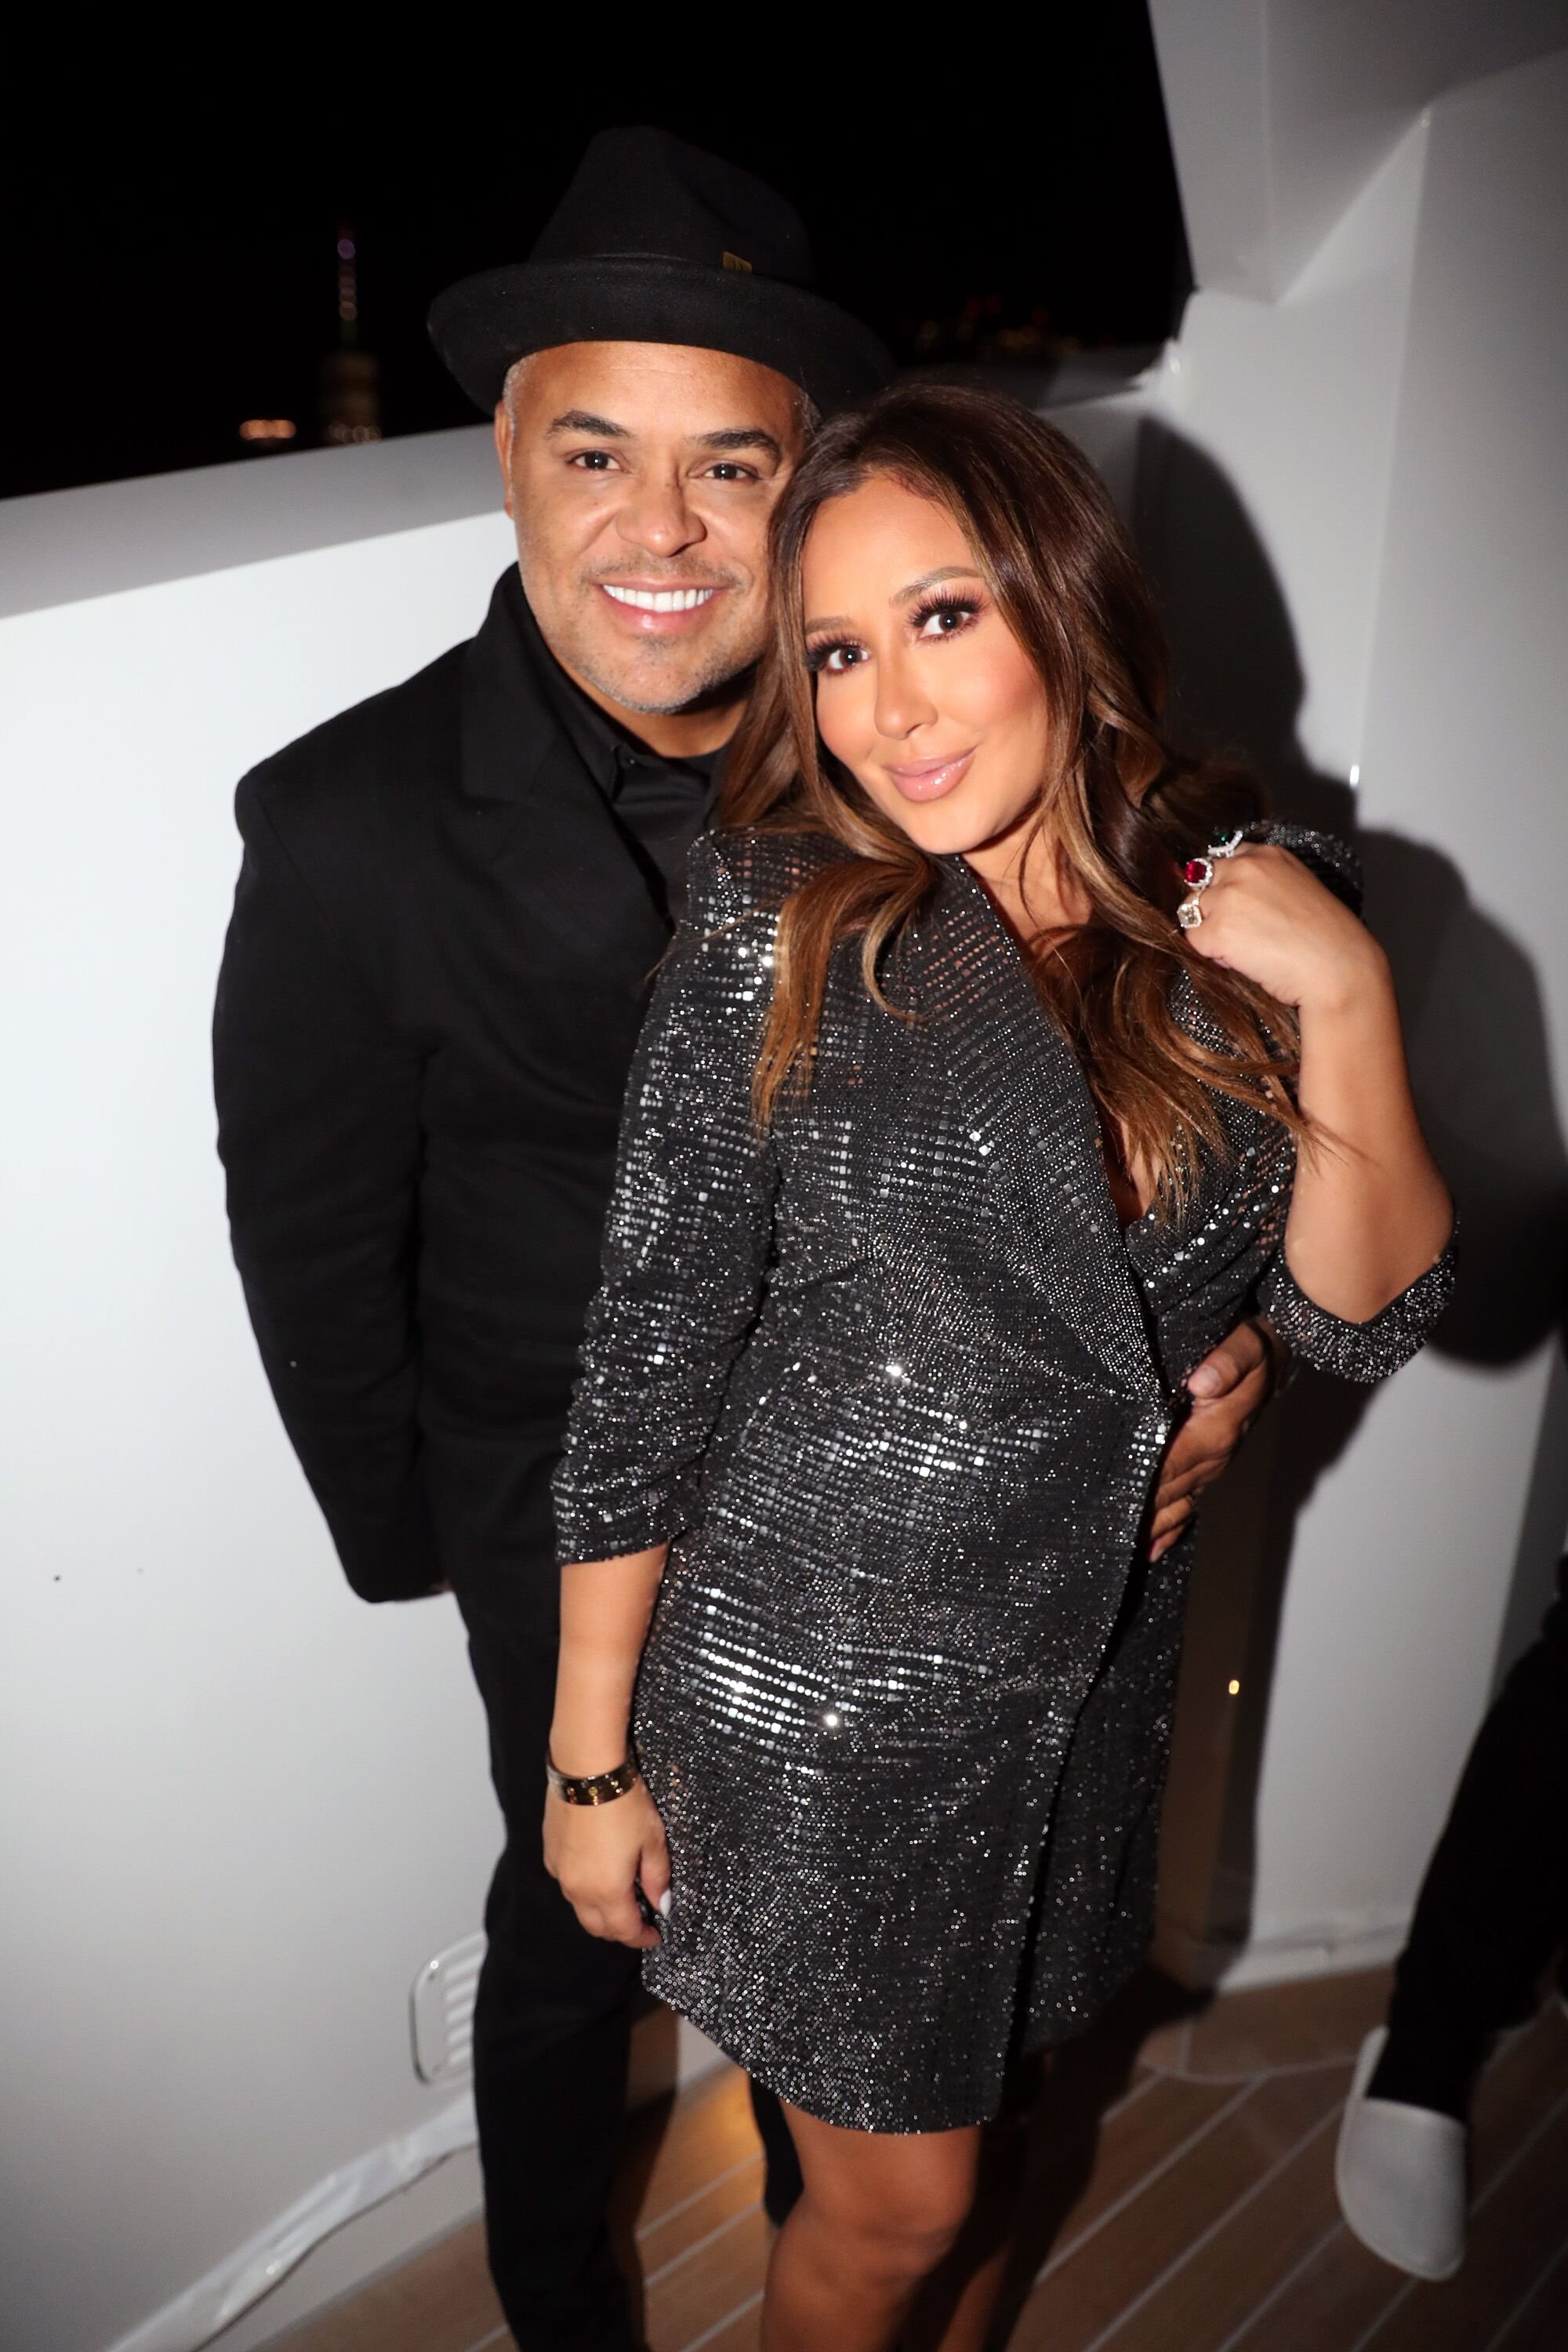 Adrienne Bailon and Israel Houghton attending an event on a yacht in October 2018. | Photo: Getty Images